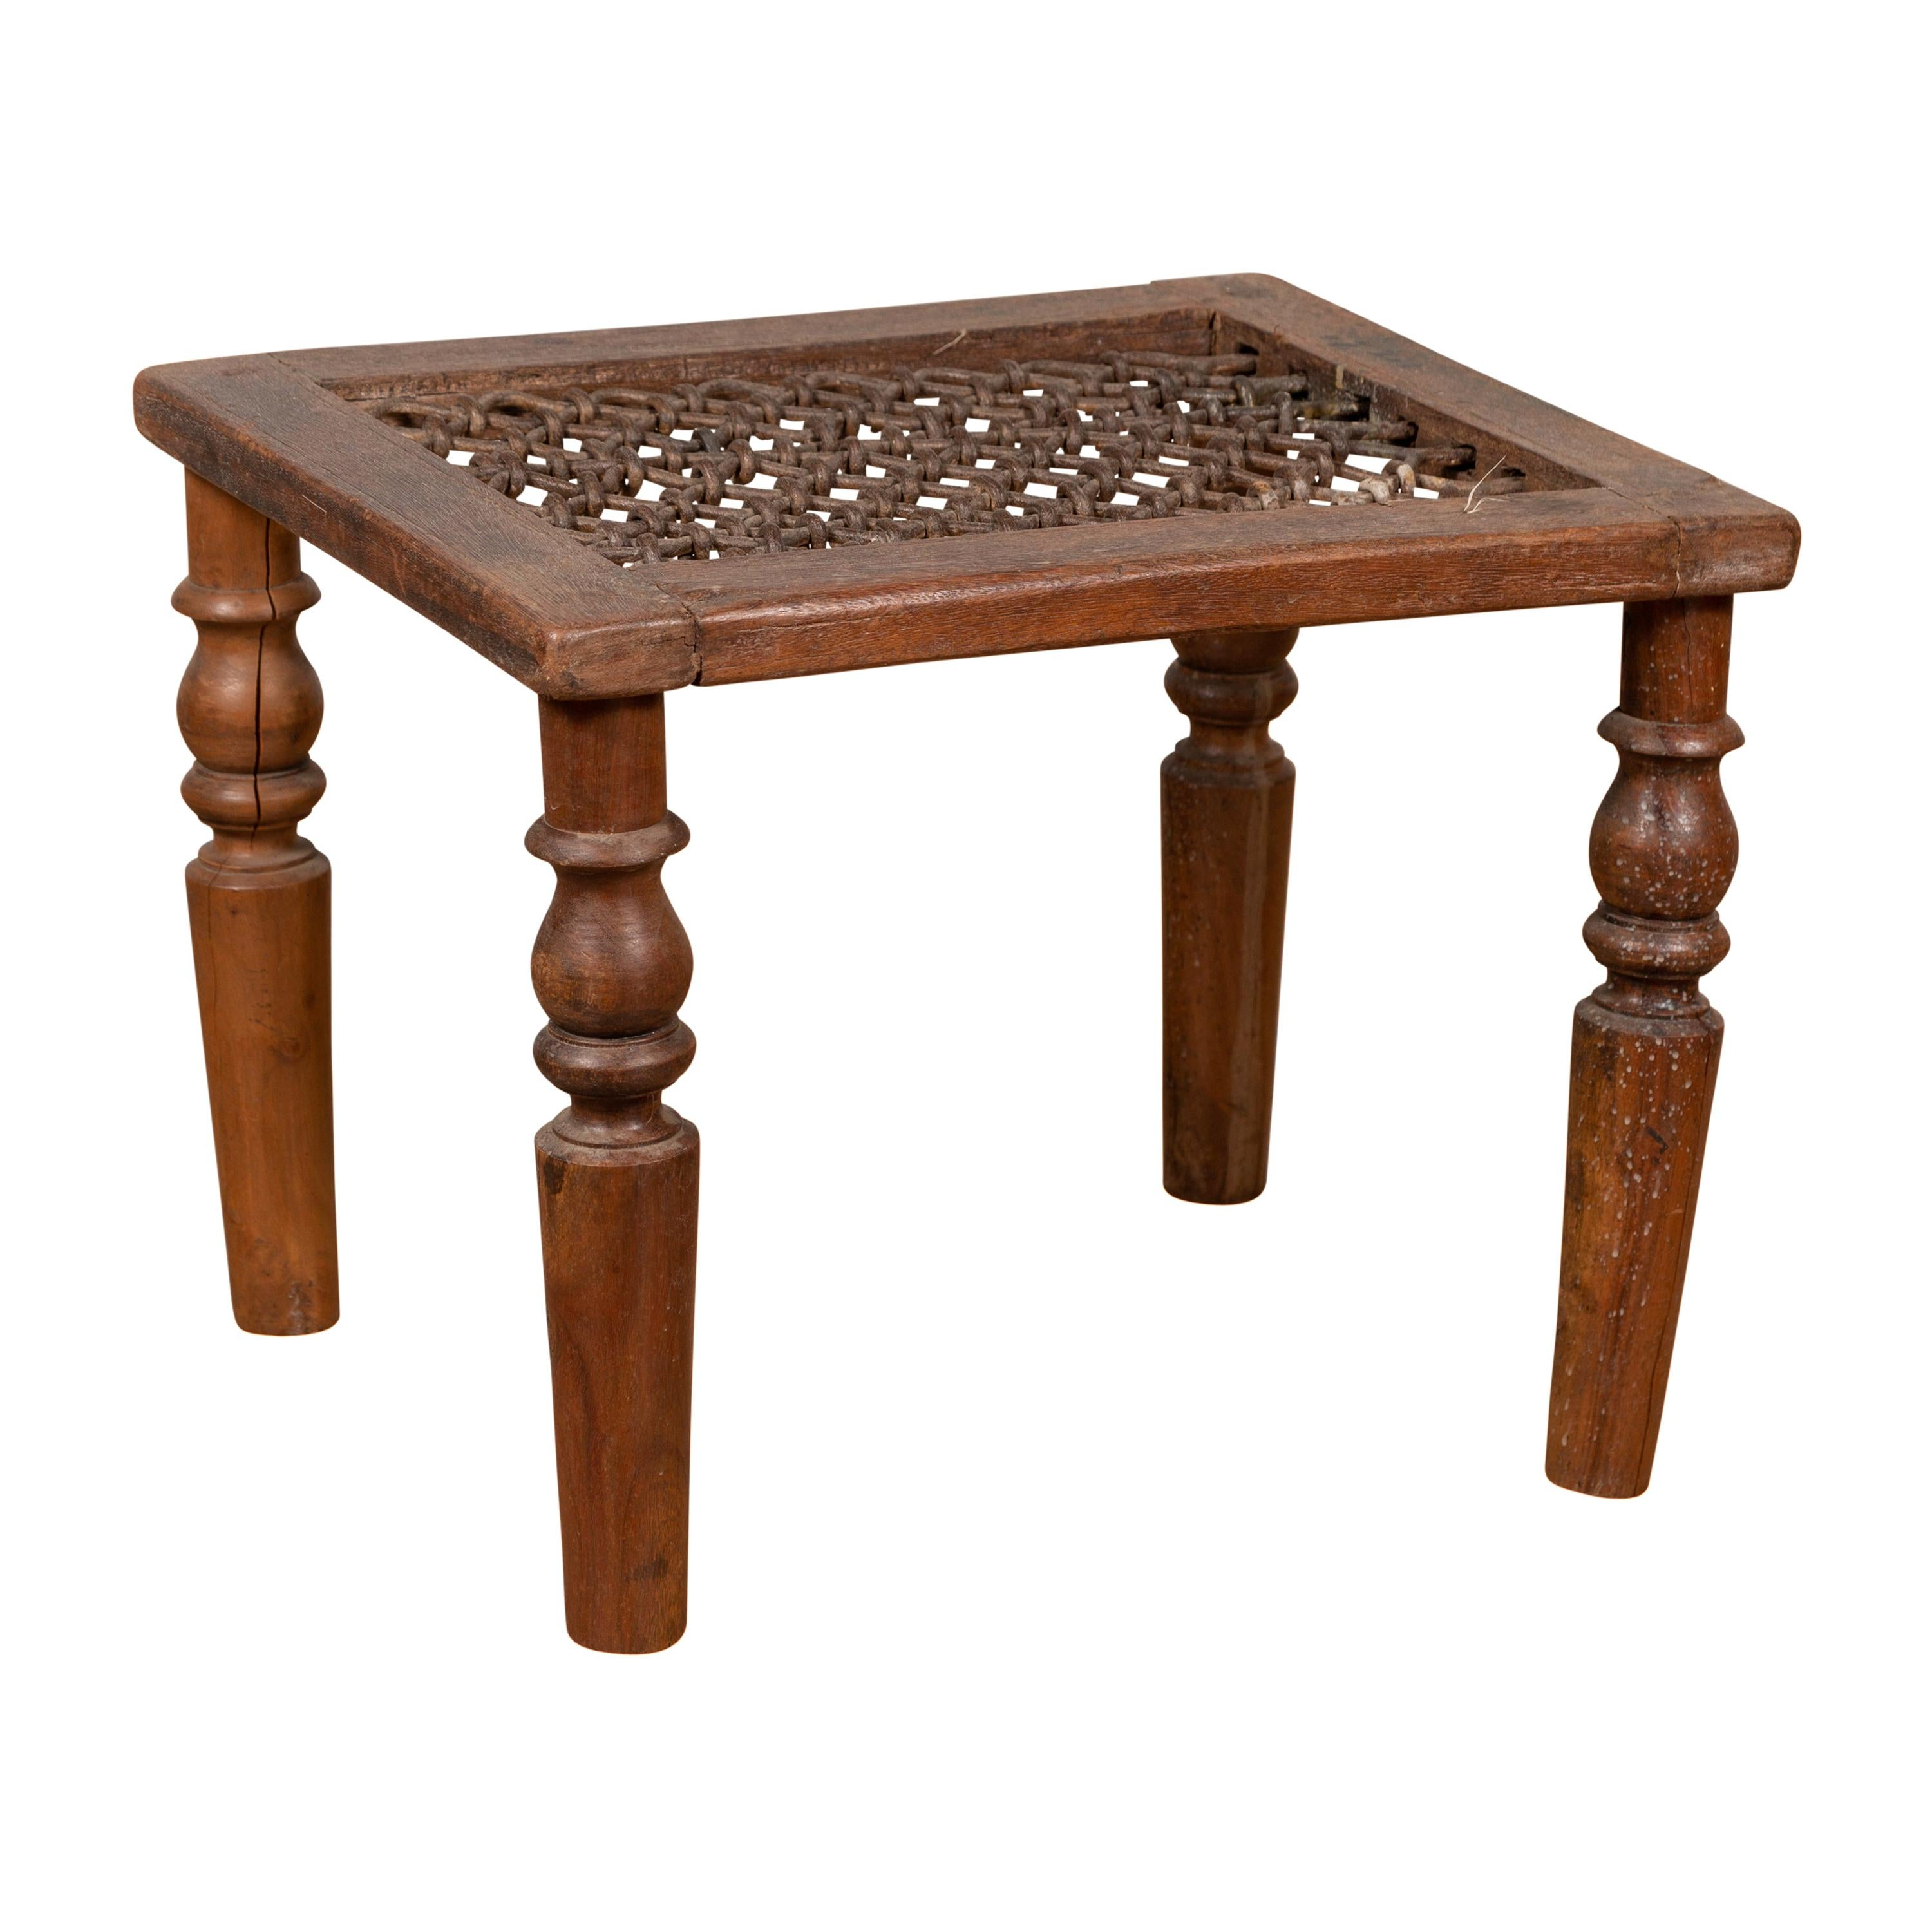 antique indian window grate made into a coffee table with turned baluster legs